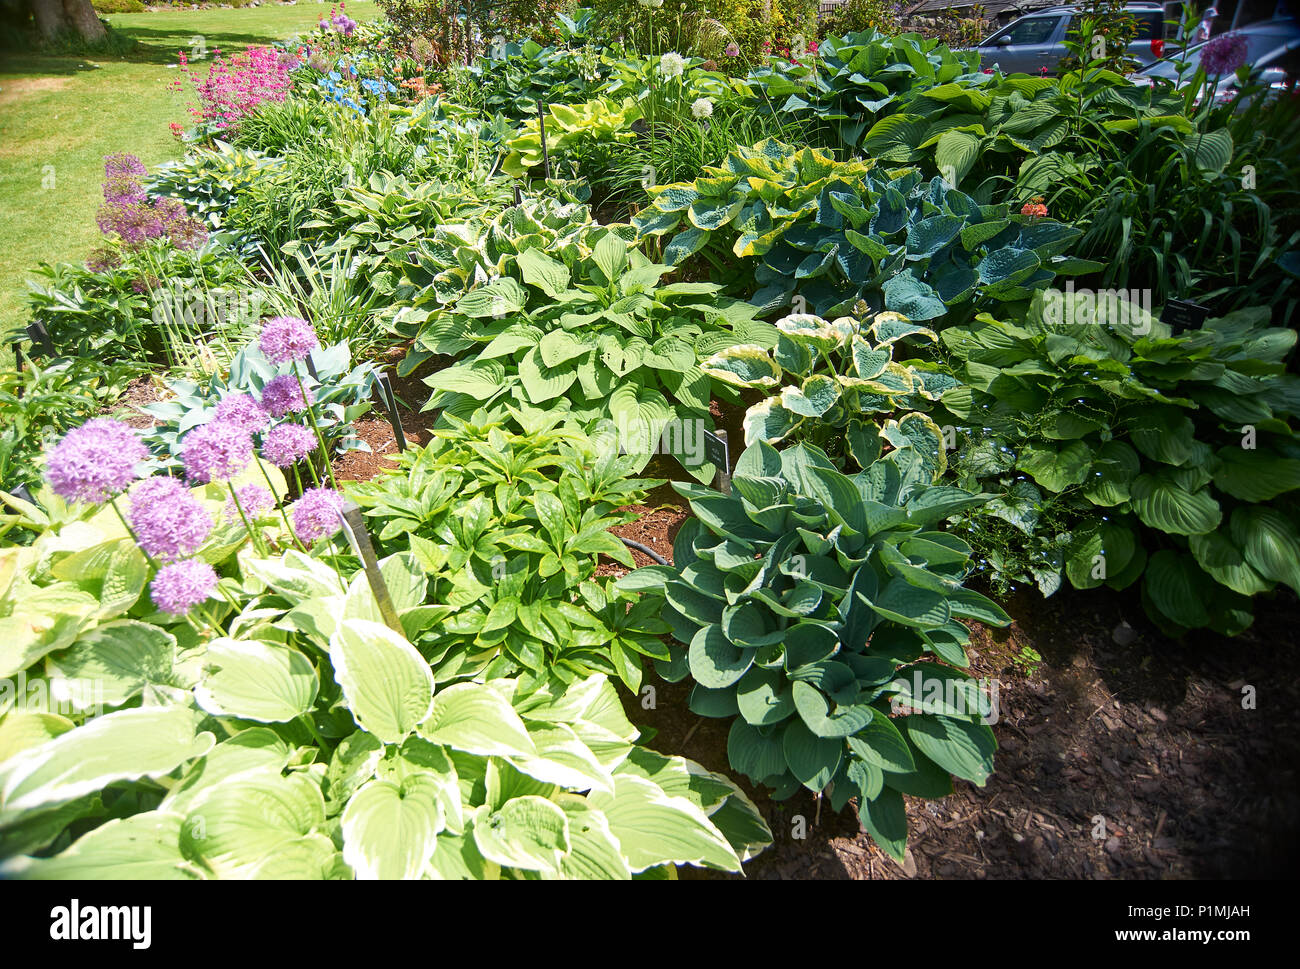 Hosta Plants Holehird Gardens Is An Extensive 10 Acre Site Located